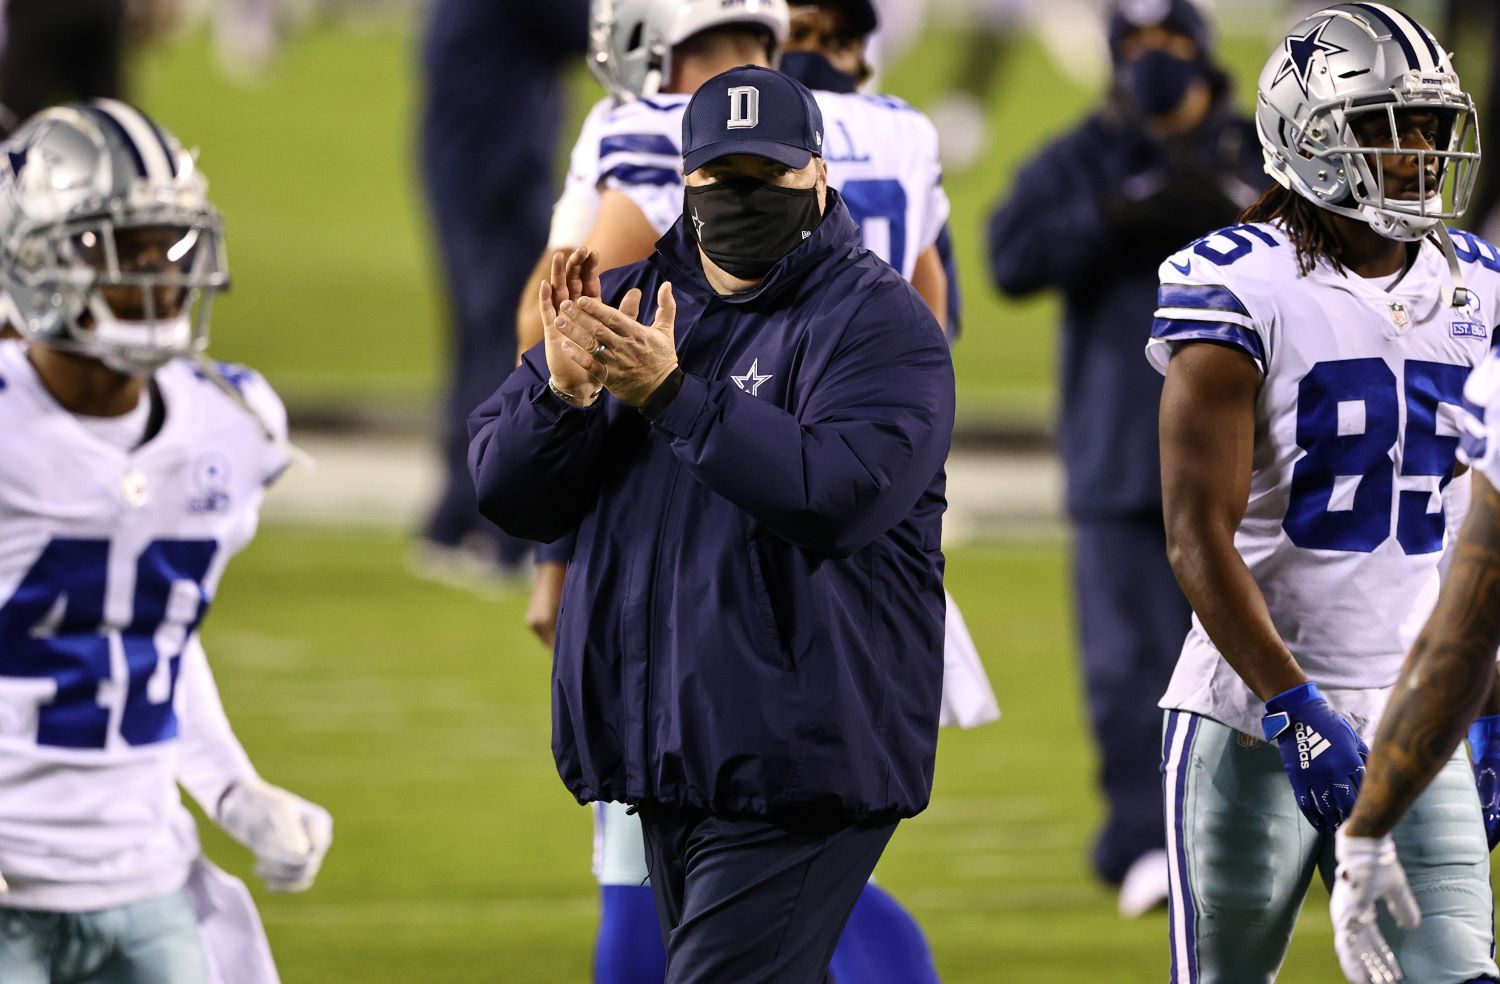 Cowboys head coach Mike McCarthy potentially saved his job by smashing watermelons as part of a team meeting before Sunday's game against the Minnesota Vikings.